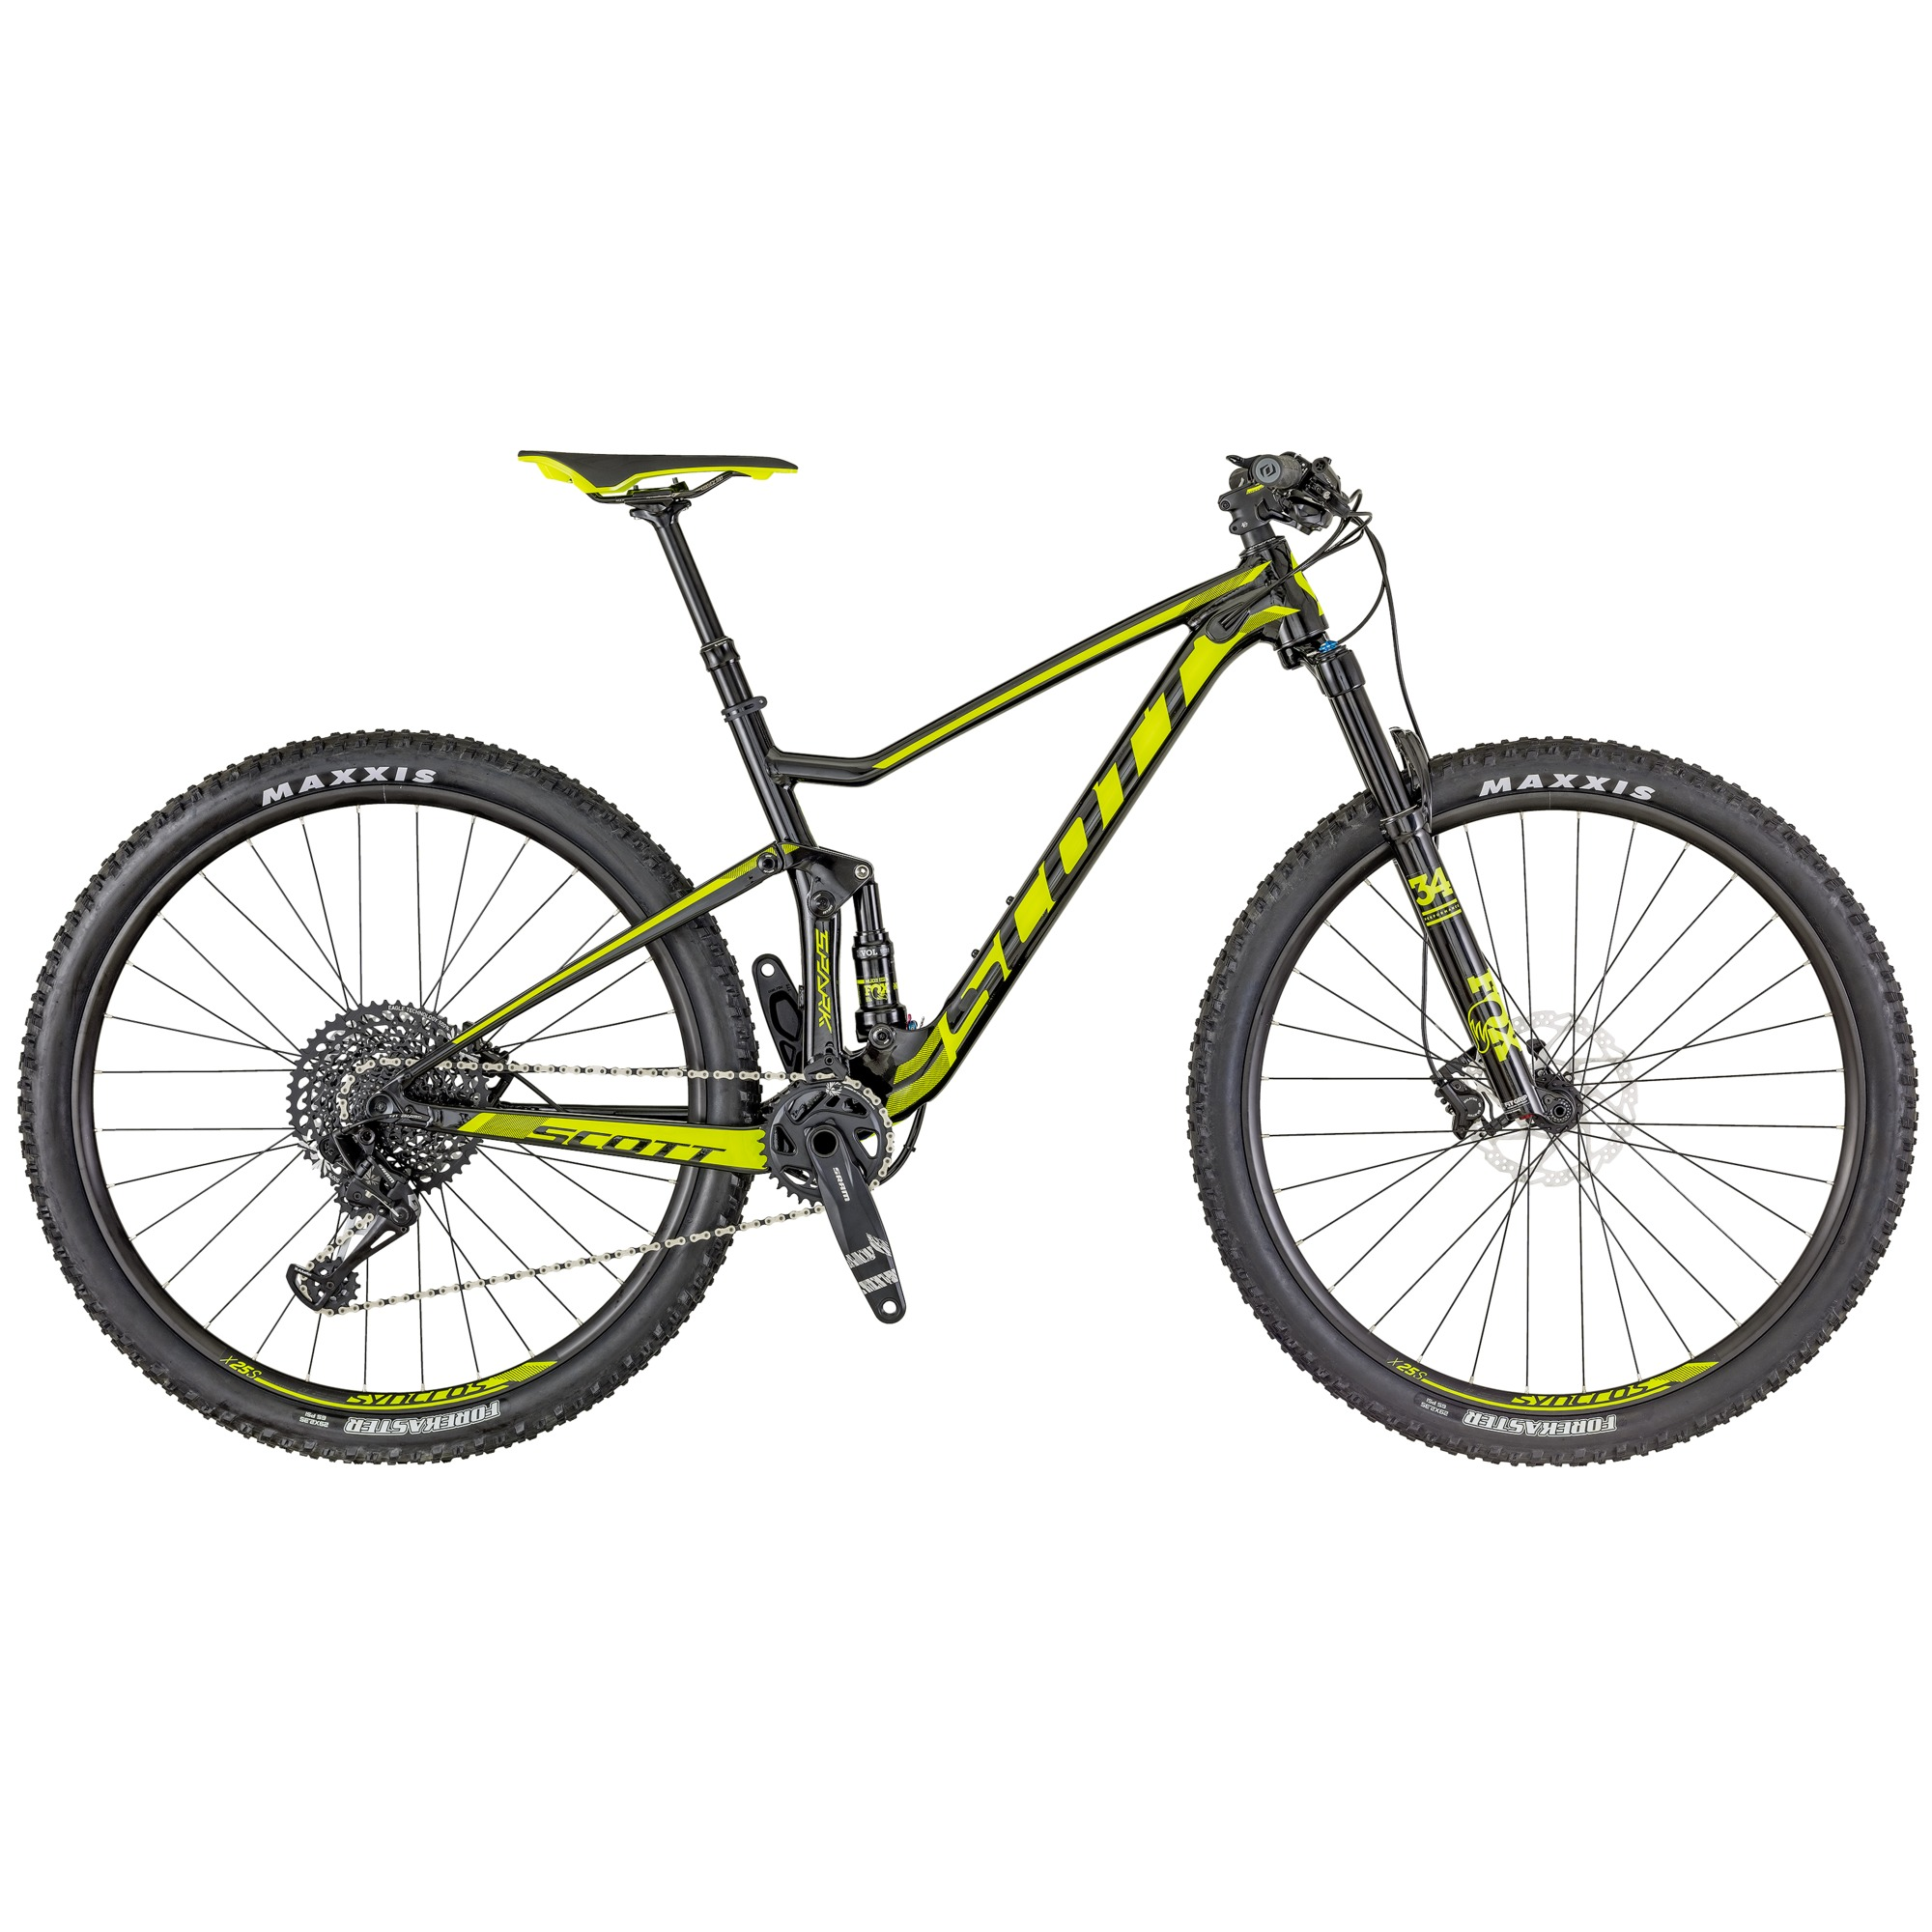 SCOTT Spark 940 Bike XL - Zweirad Homann